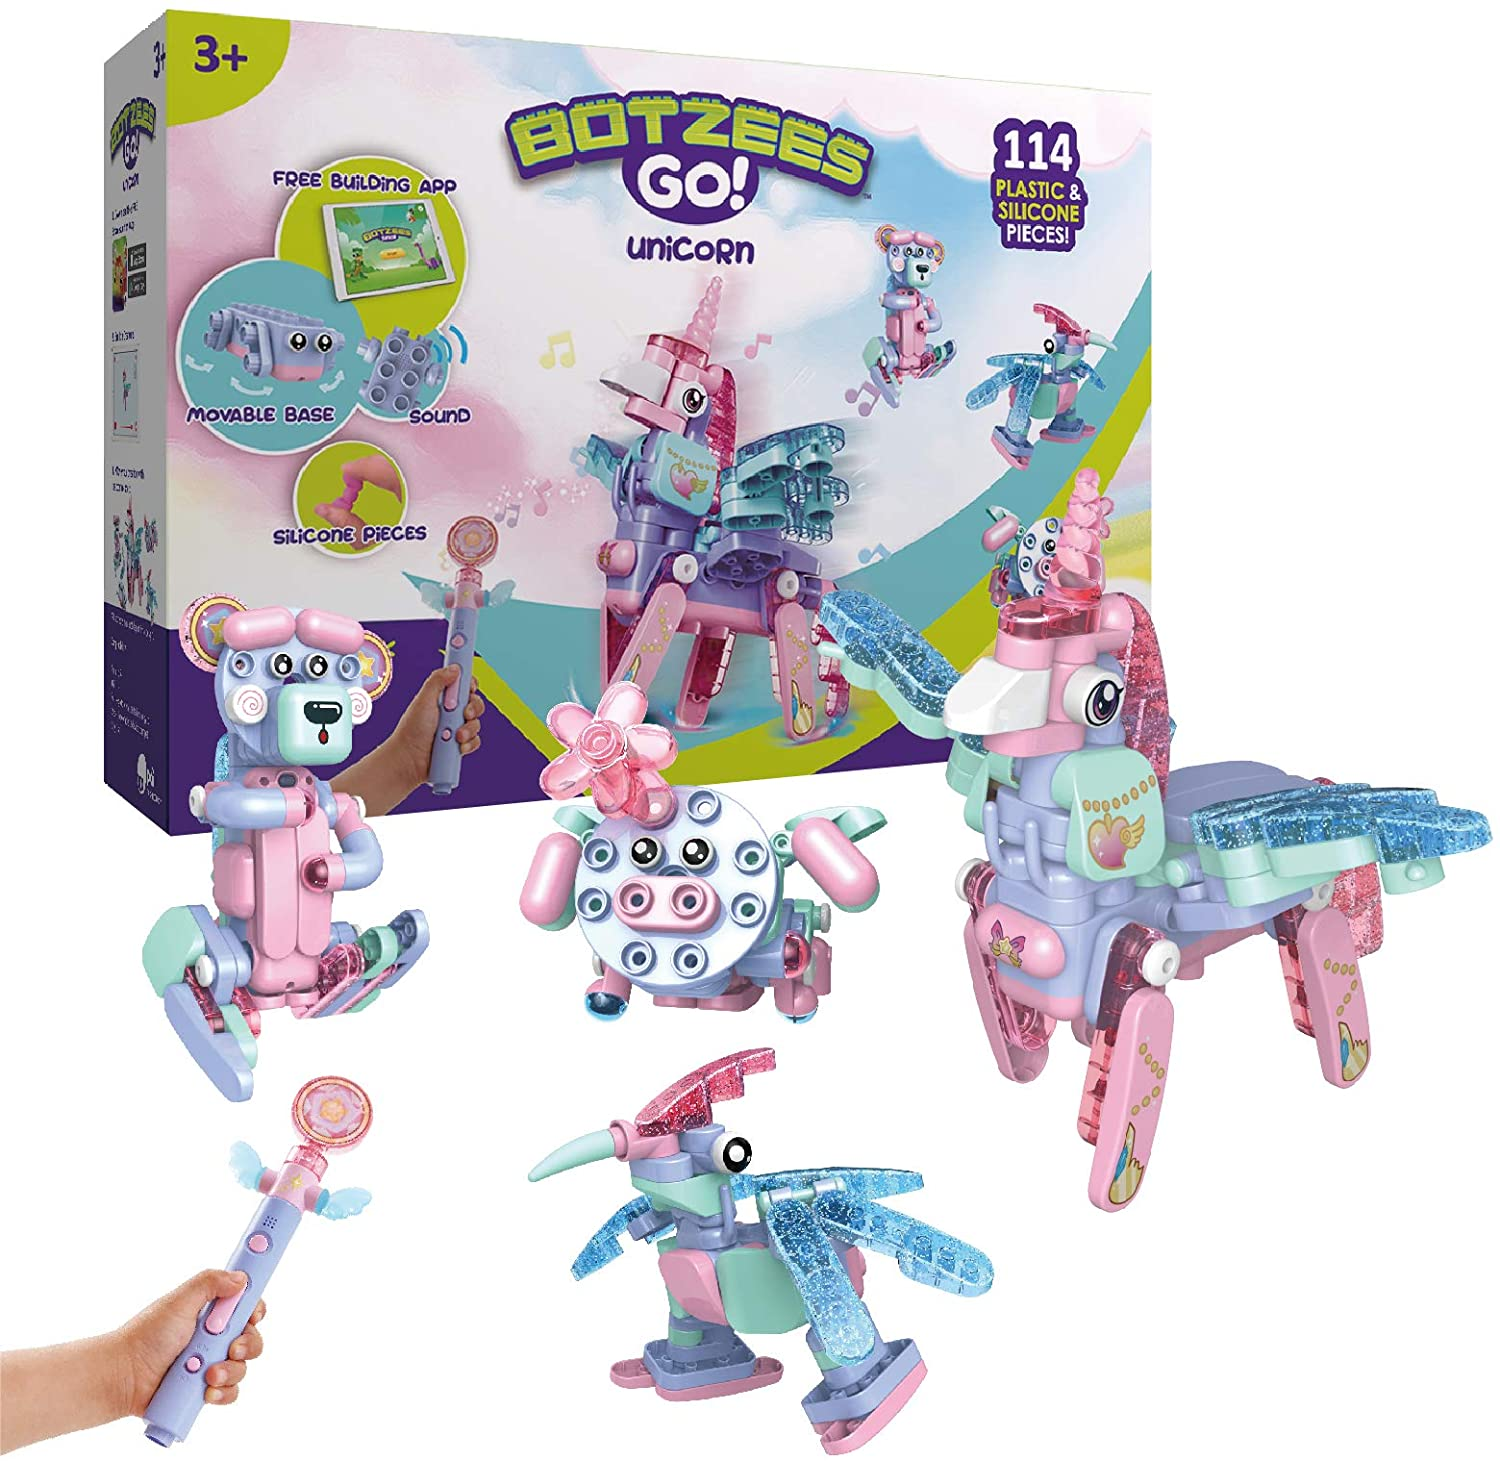 Botzees GO! - Unicorn Set